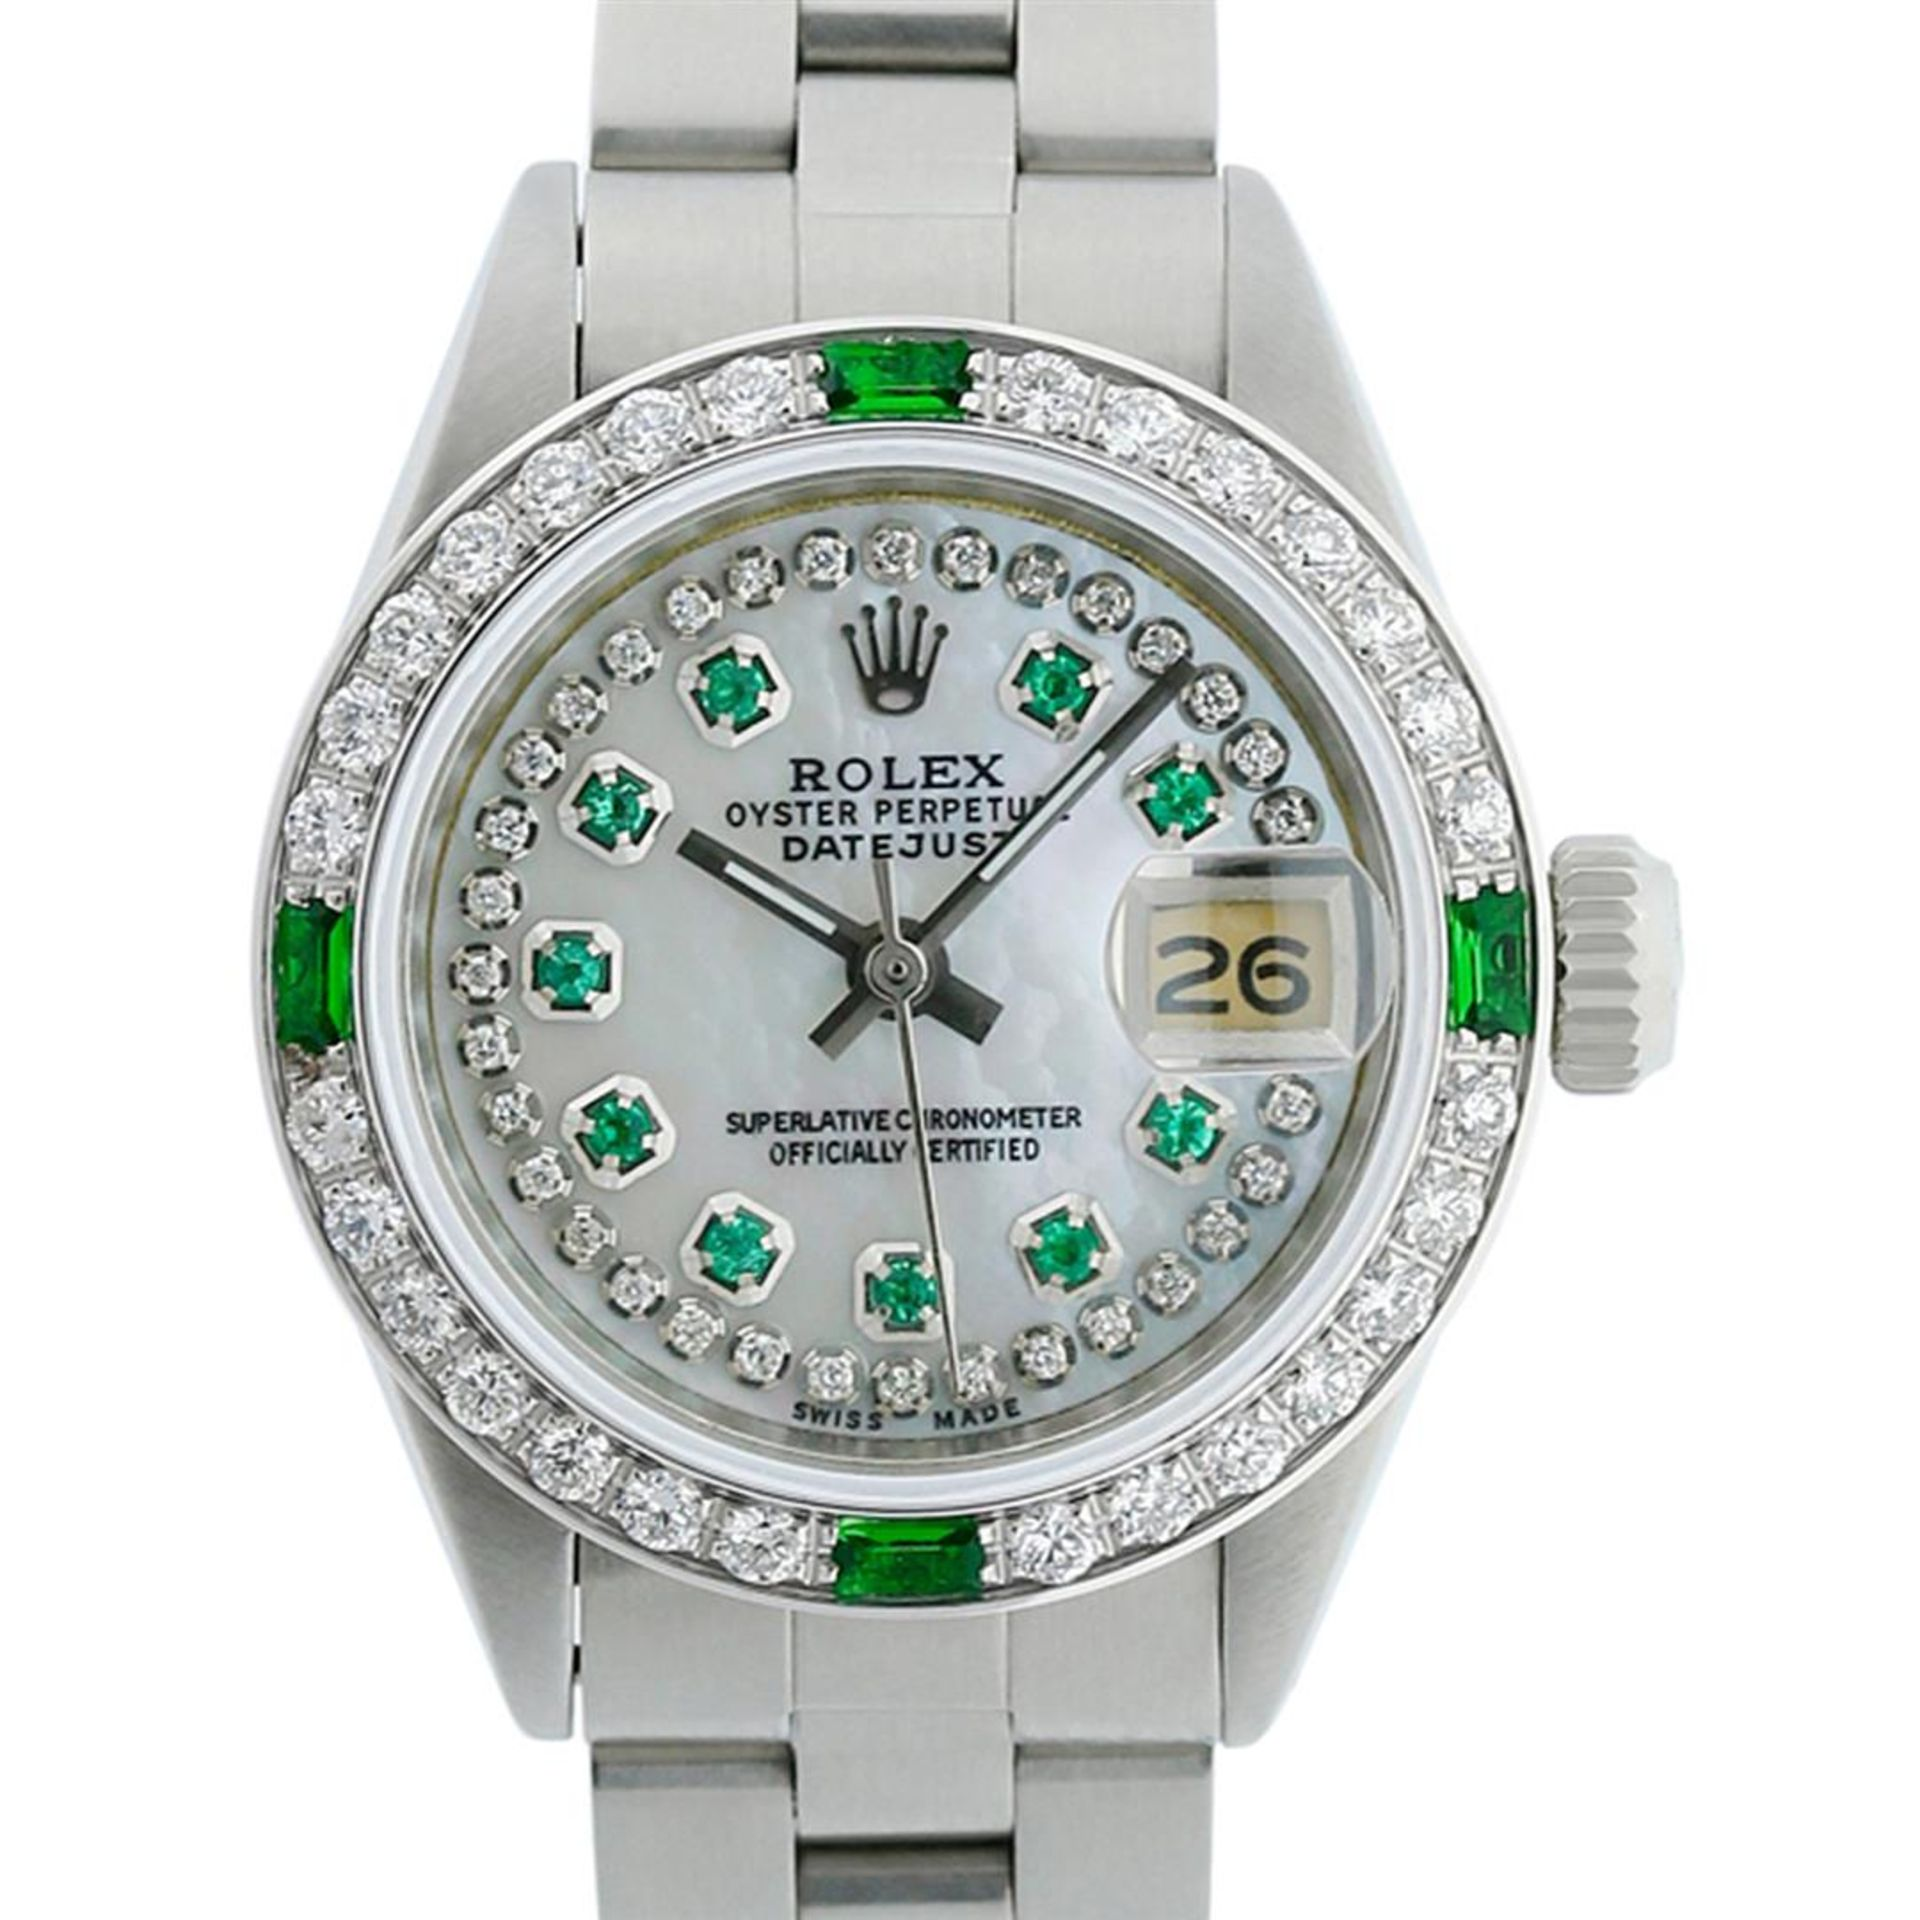 Rolex Ladies Stainless Steel MOP Emerald & Diamond Oyster Perpetaul Datejust Wri - Image 5 of 9